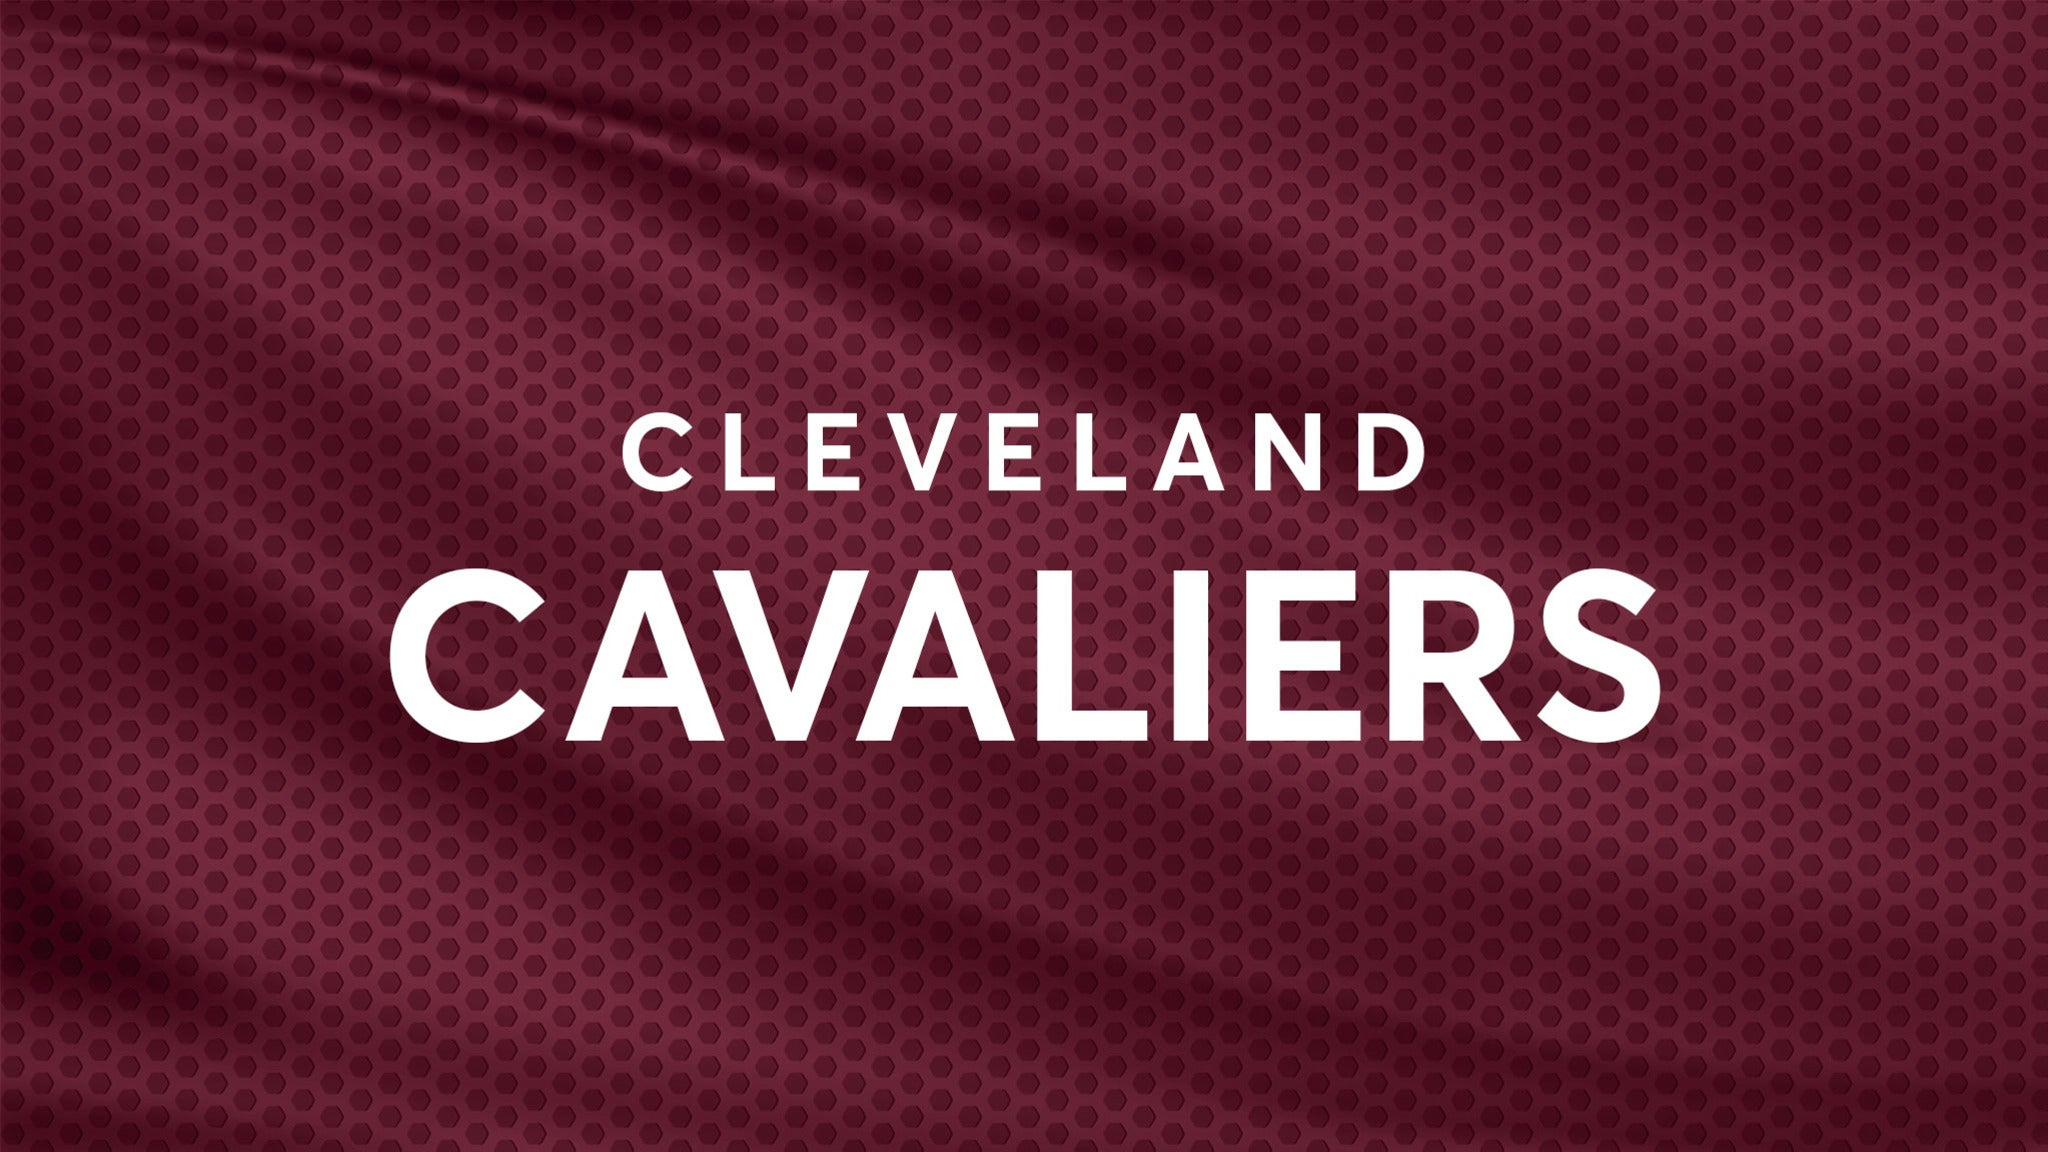 Cleveland Cavaliers vs. New York Knicks